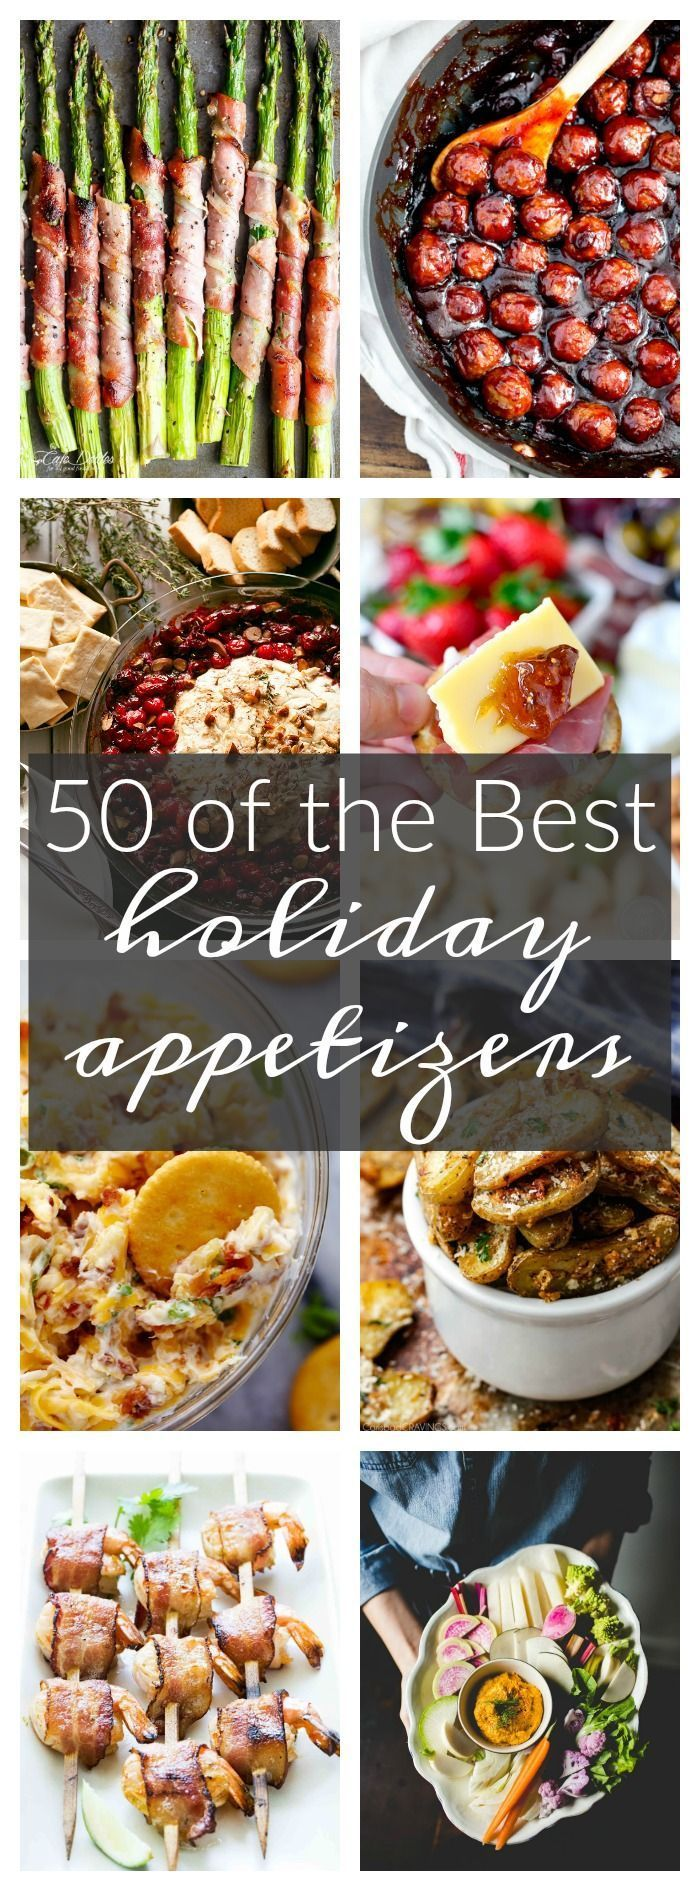 50 of the best appetizers for the holidays 50th holidays and food 50 of the best appetizers for the holidays a dash of sanity best holiday appetizersholiday appitizersappetizers for thanksgivingchristmas dinner ideas forumfinder Image collections